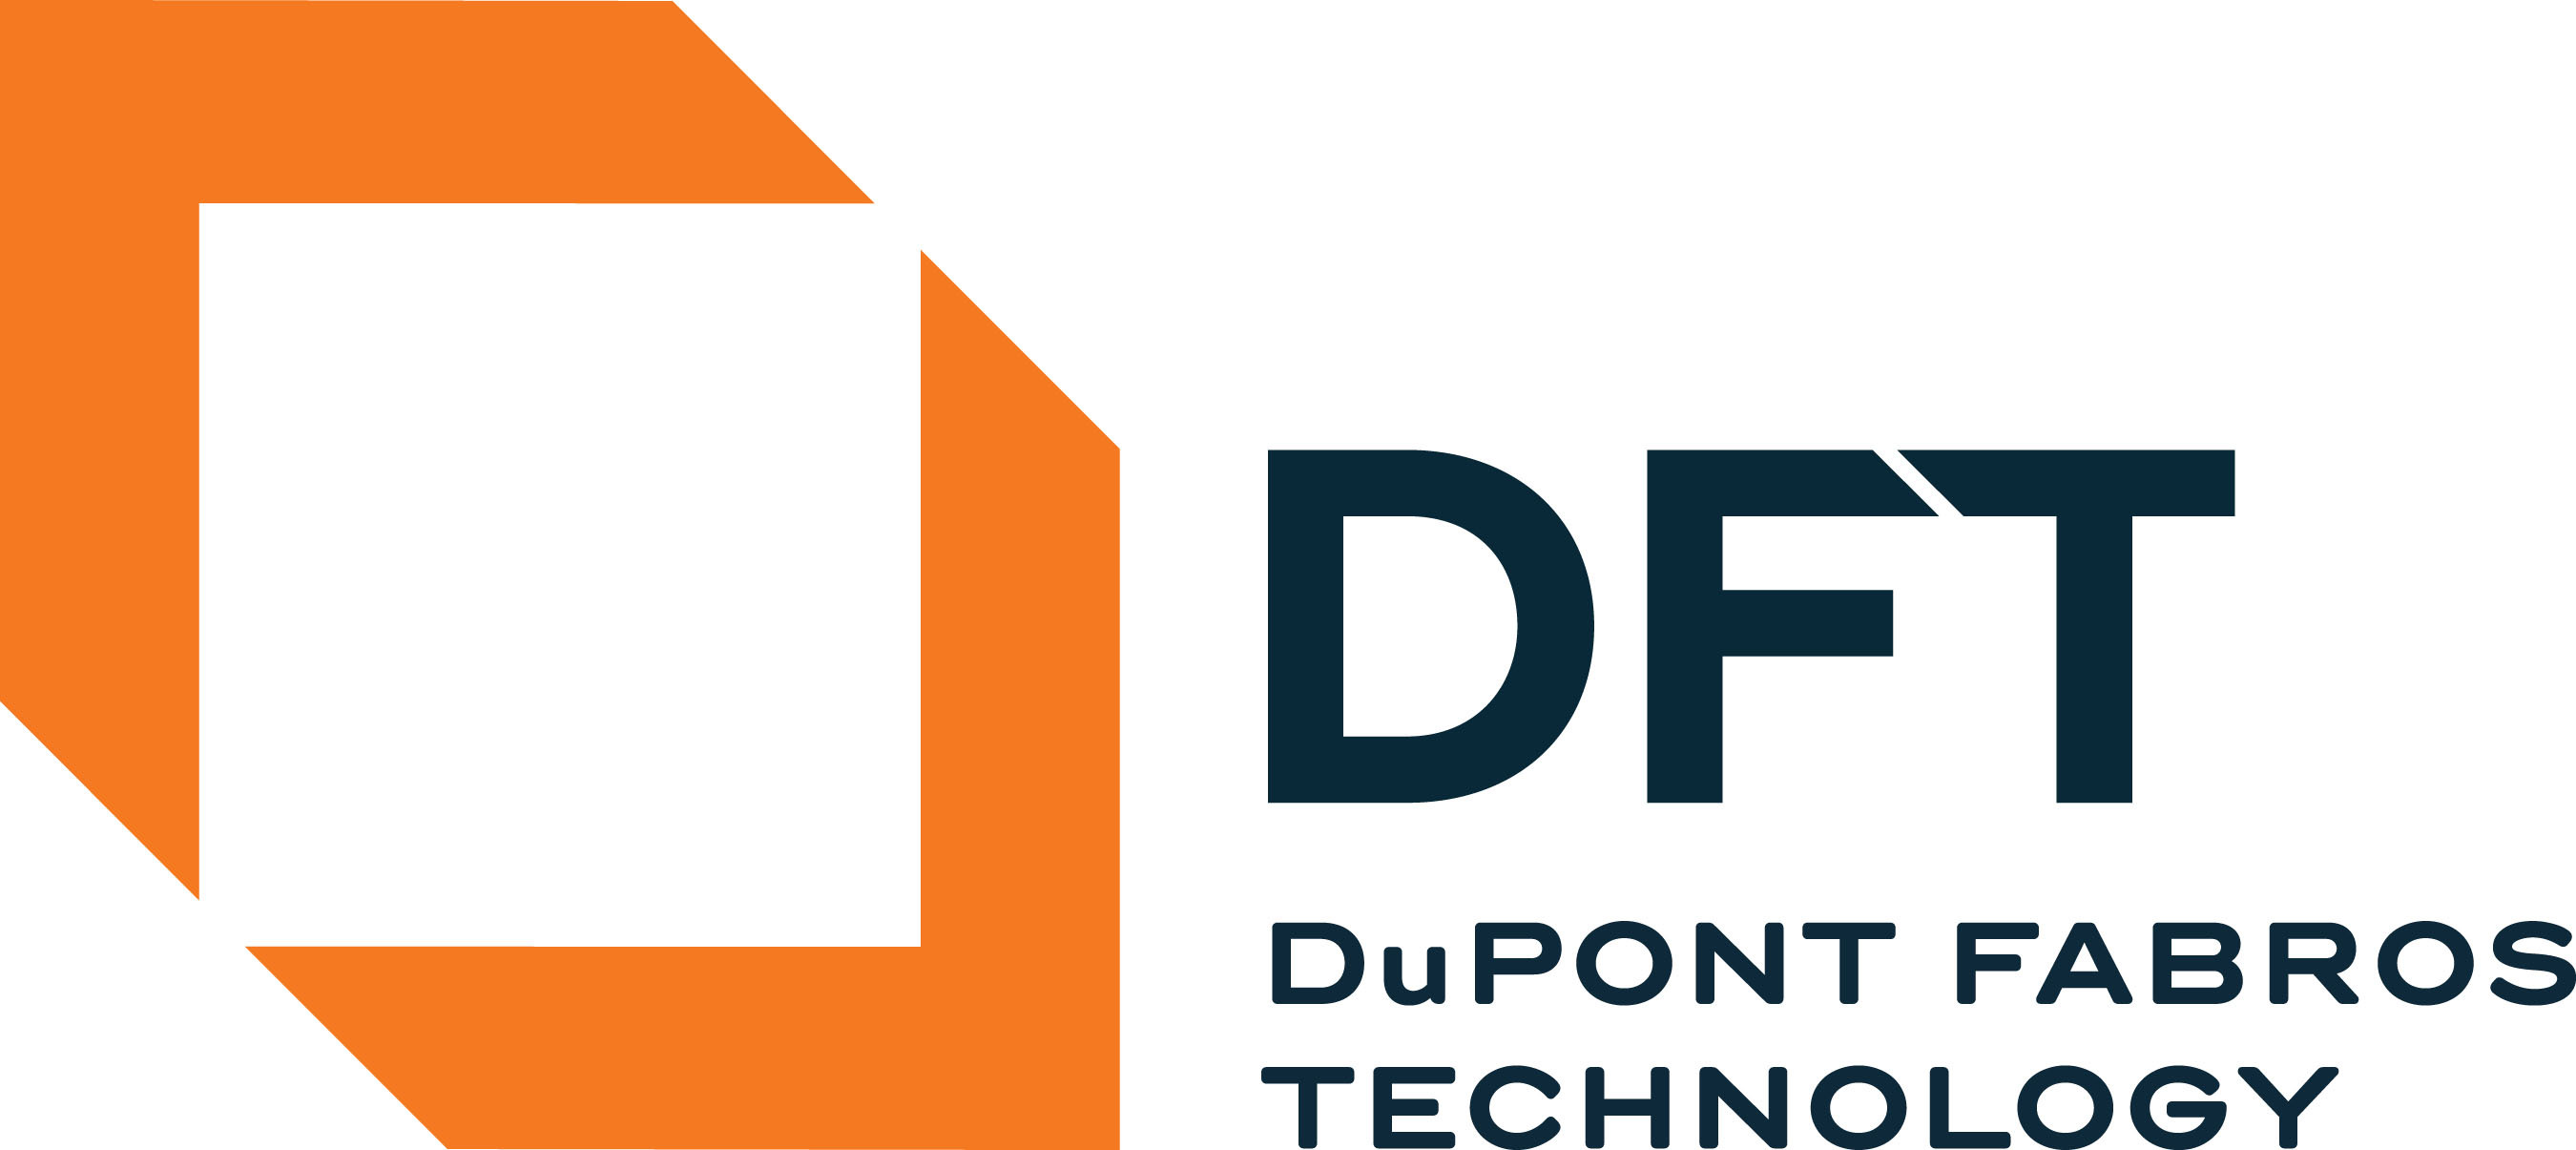 DuPont Fabros Technology, Inc. To Host Investor Day On November 10, 2015 In New York